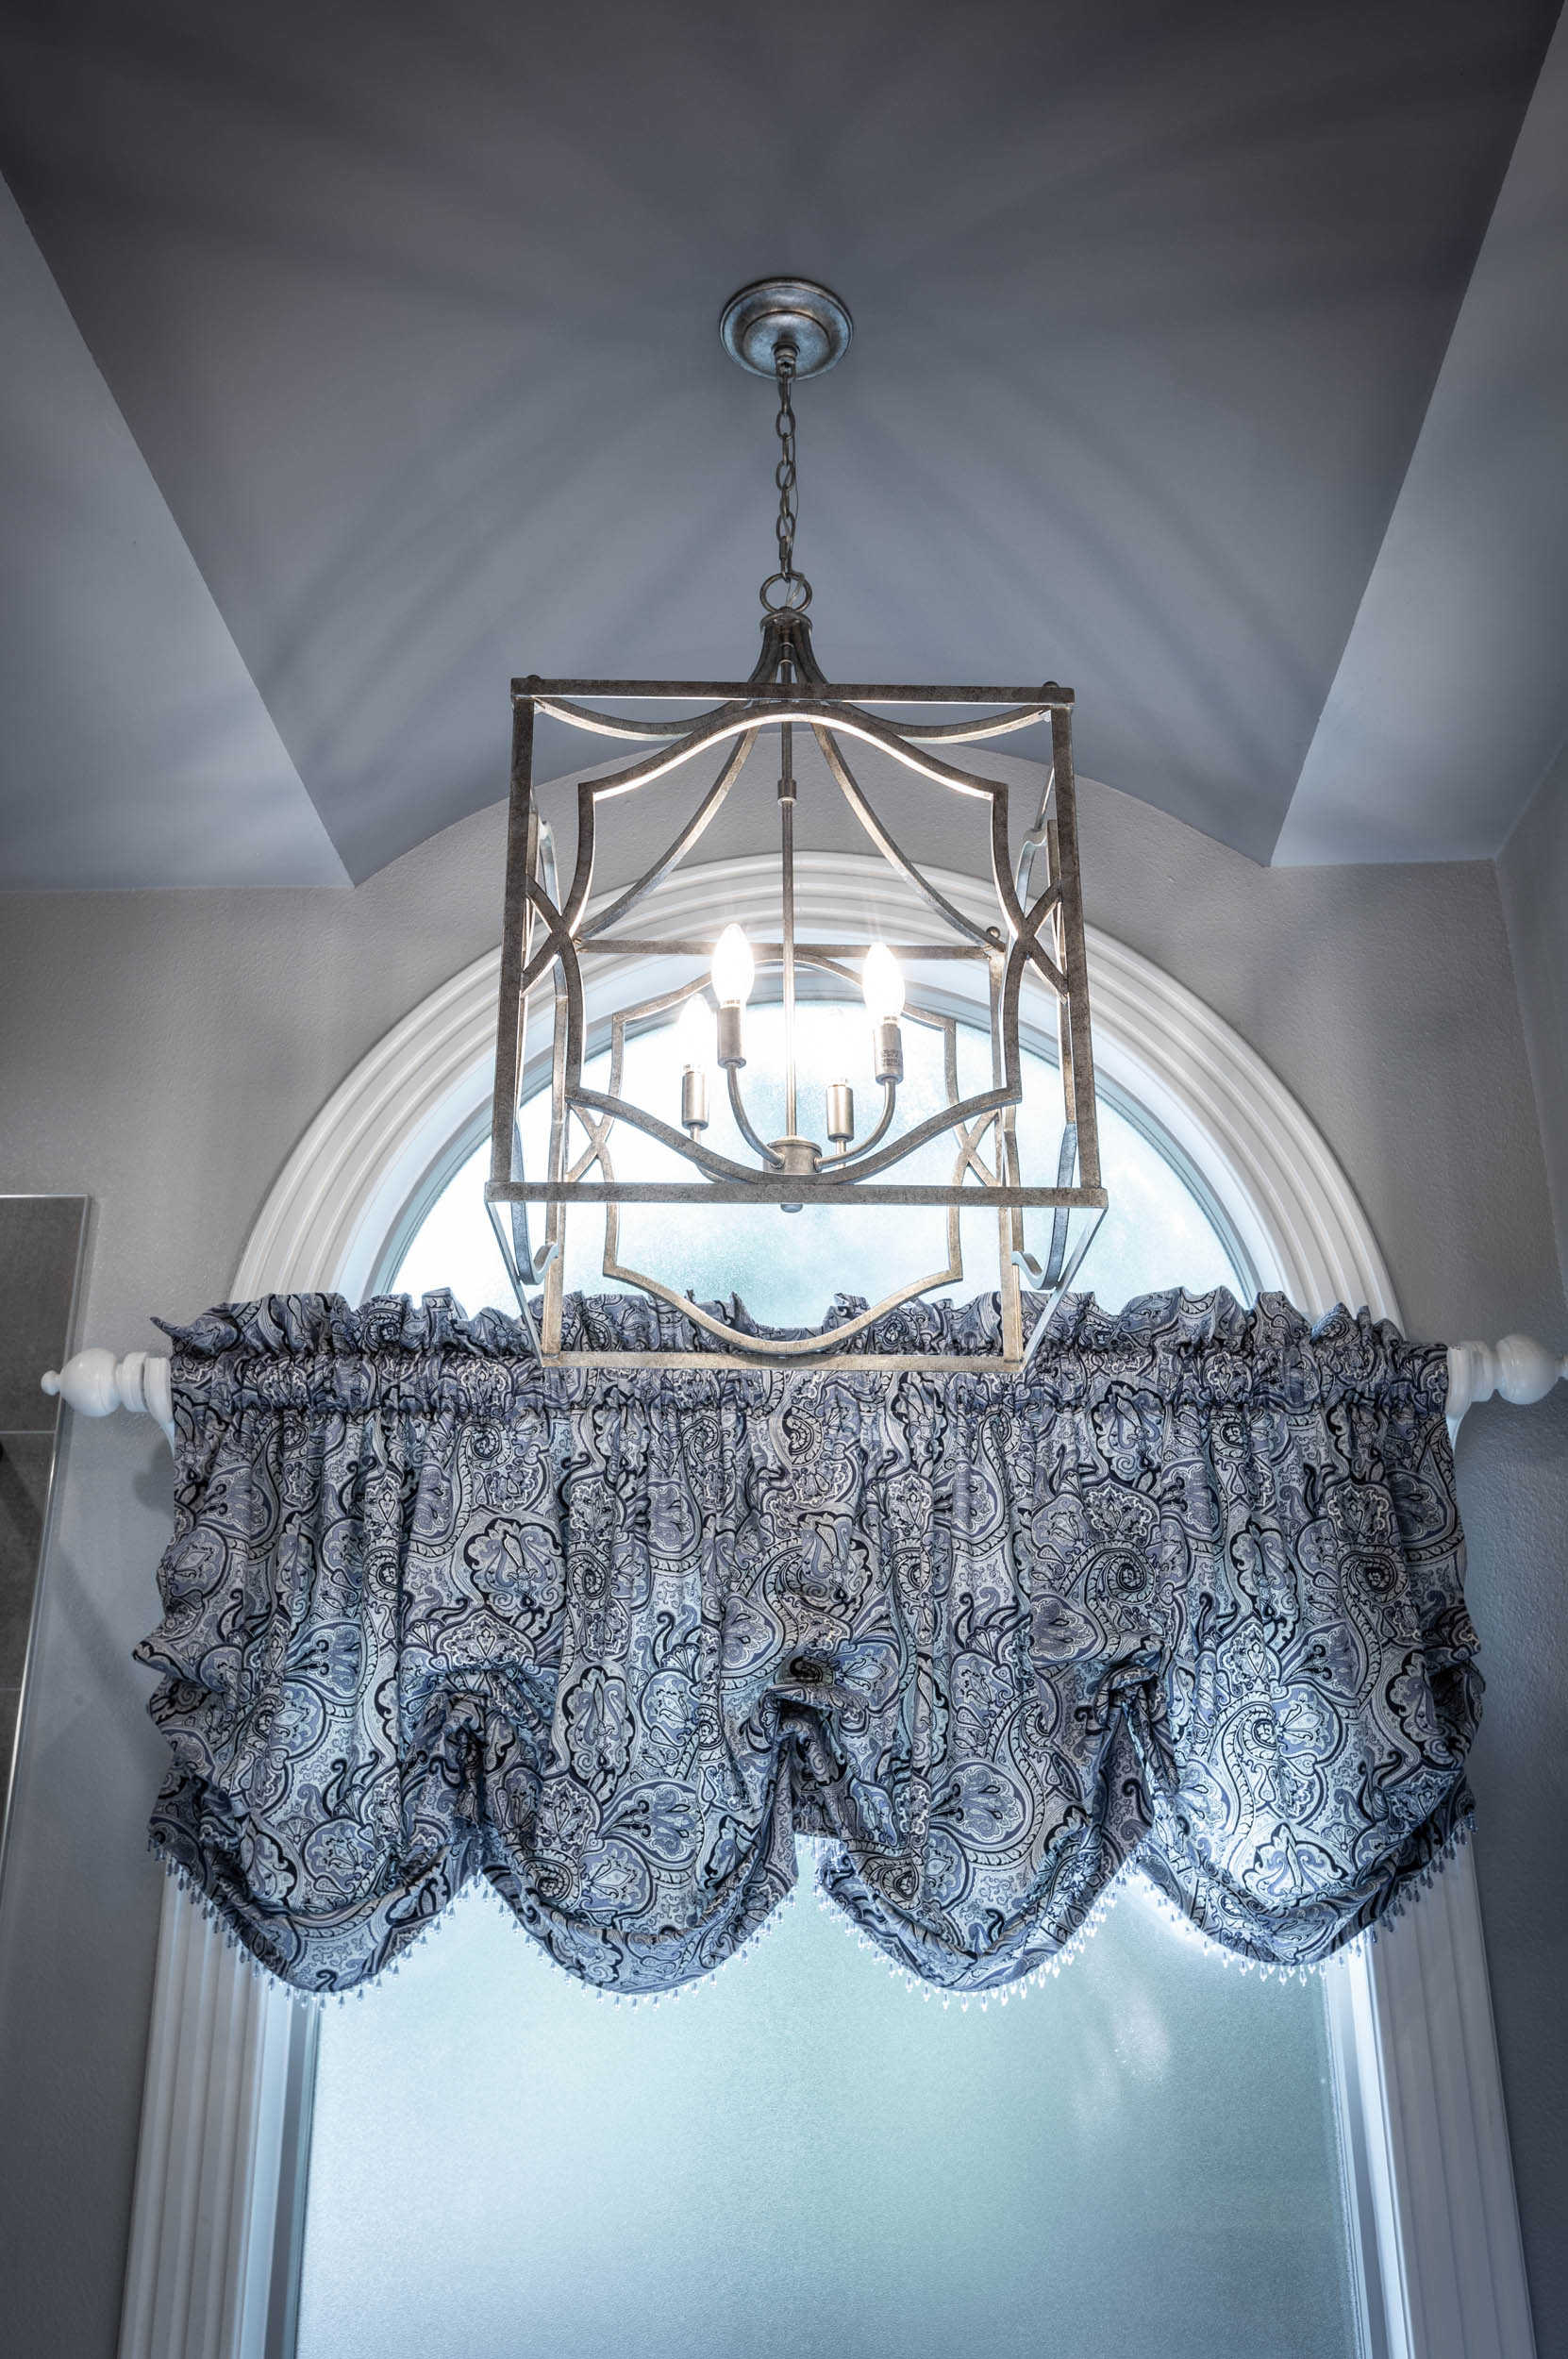 lighting fixtures for bath remodel near me flower mound tx